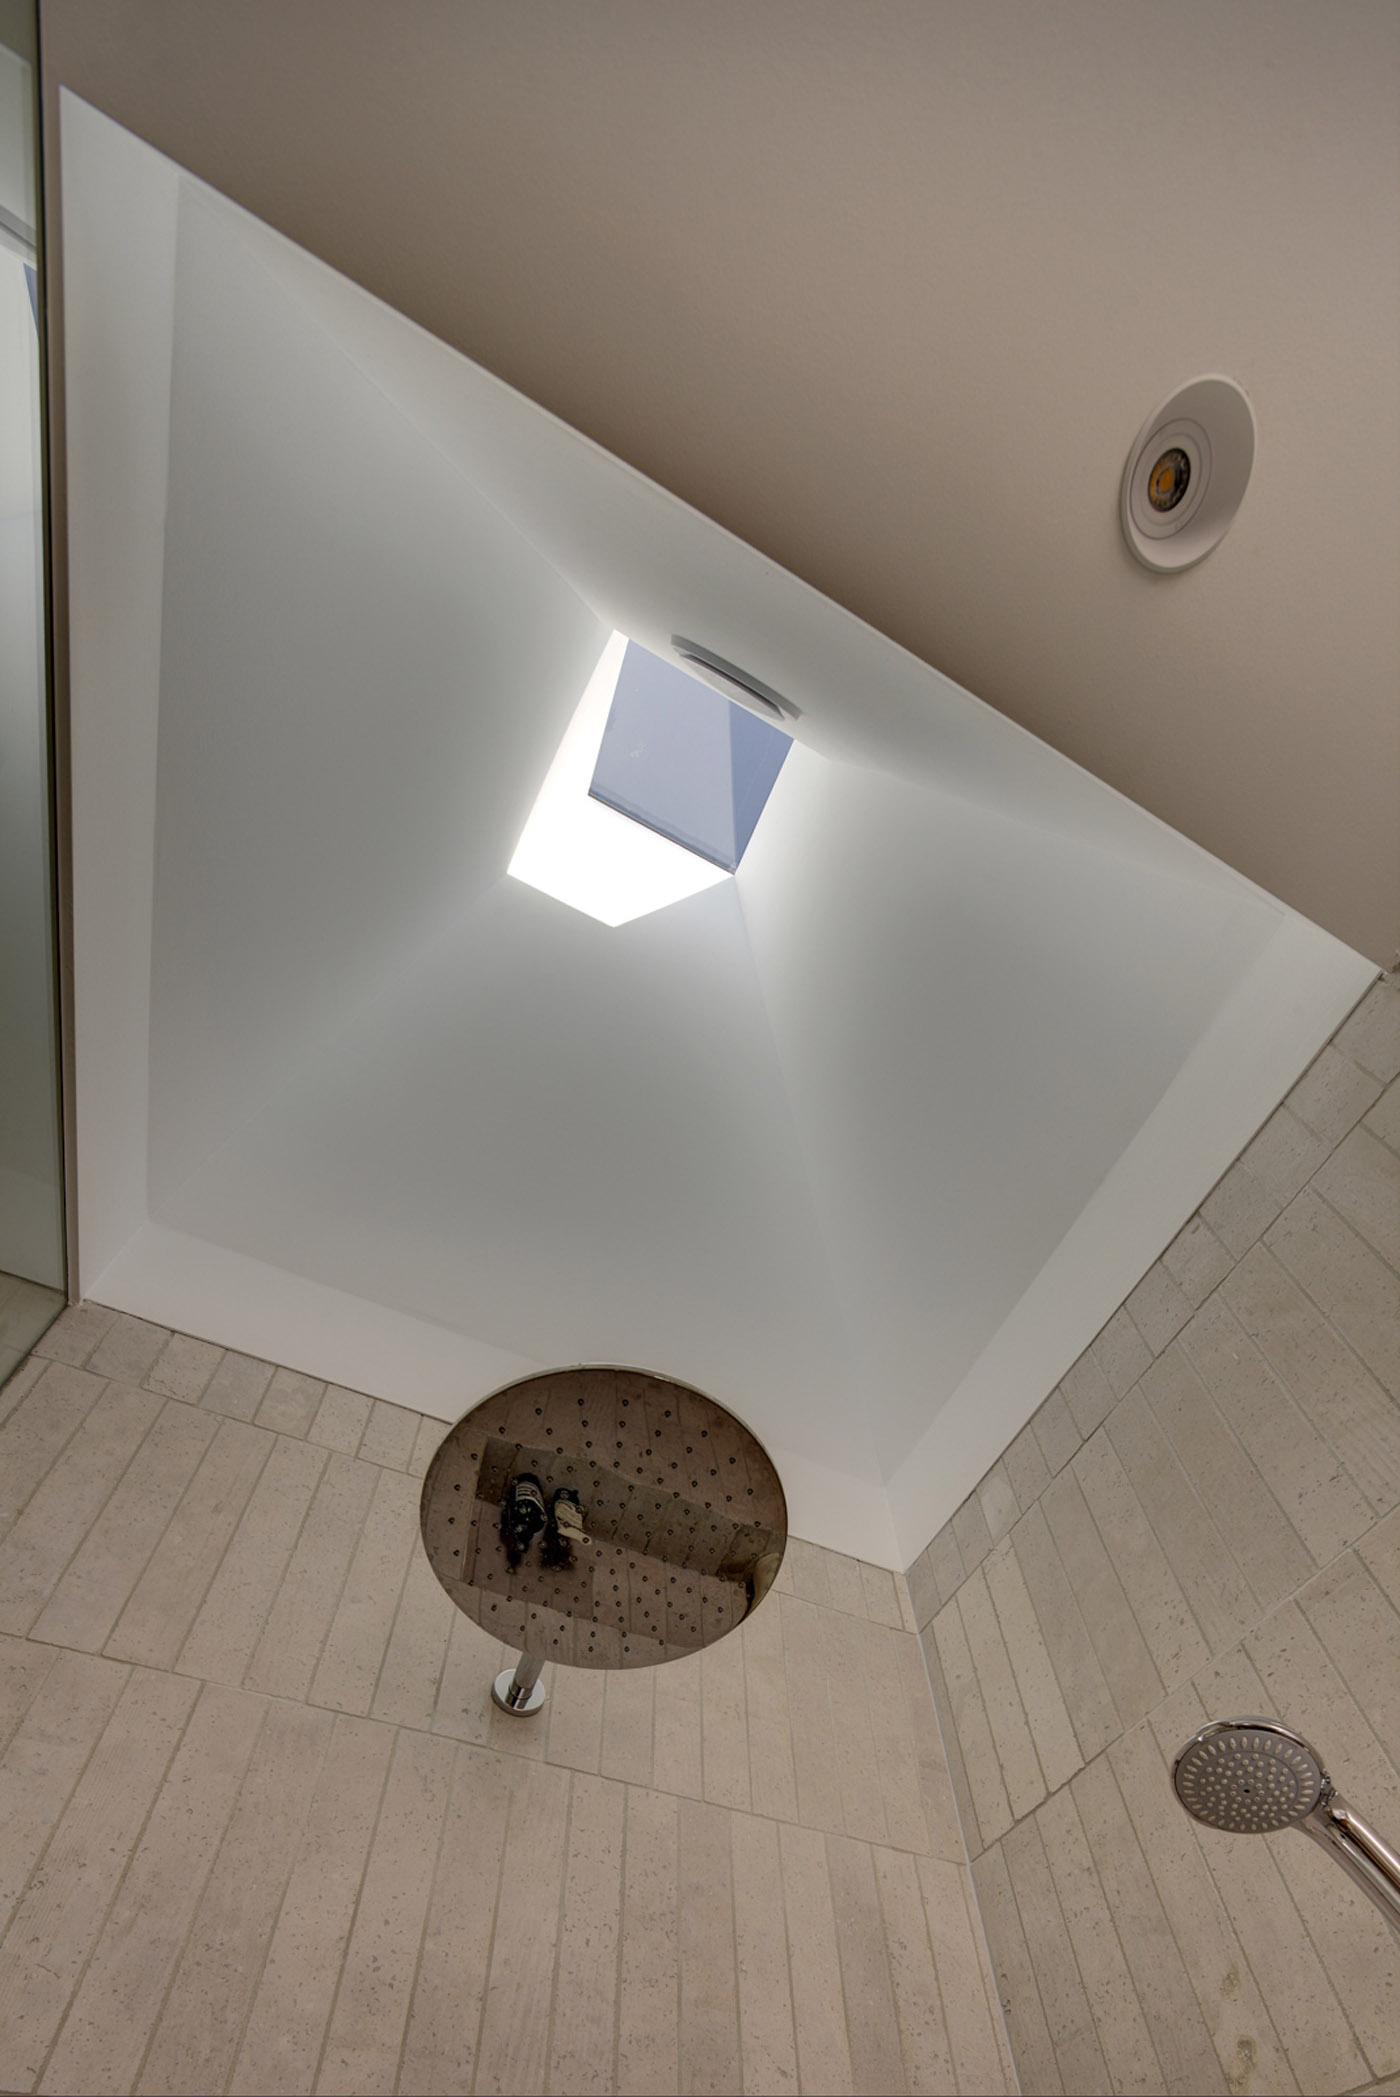 Gandha Kariappa Terrace by Sydney residential architects Sam Crawford Architects. Light filled bathroom with feature skylight above shower